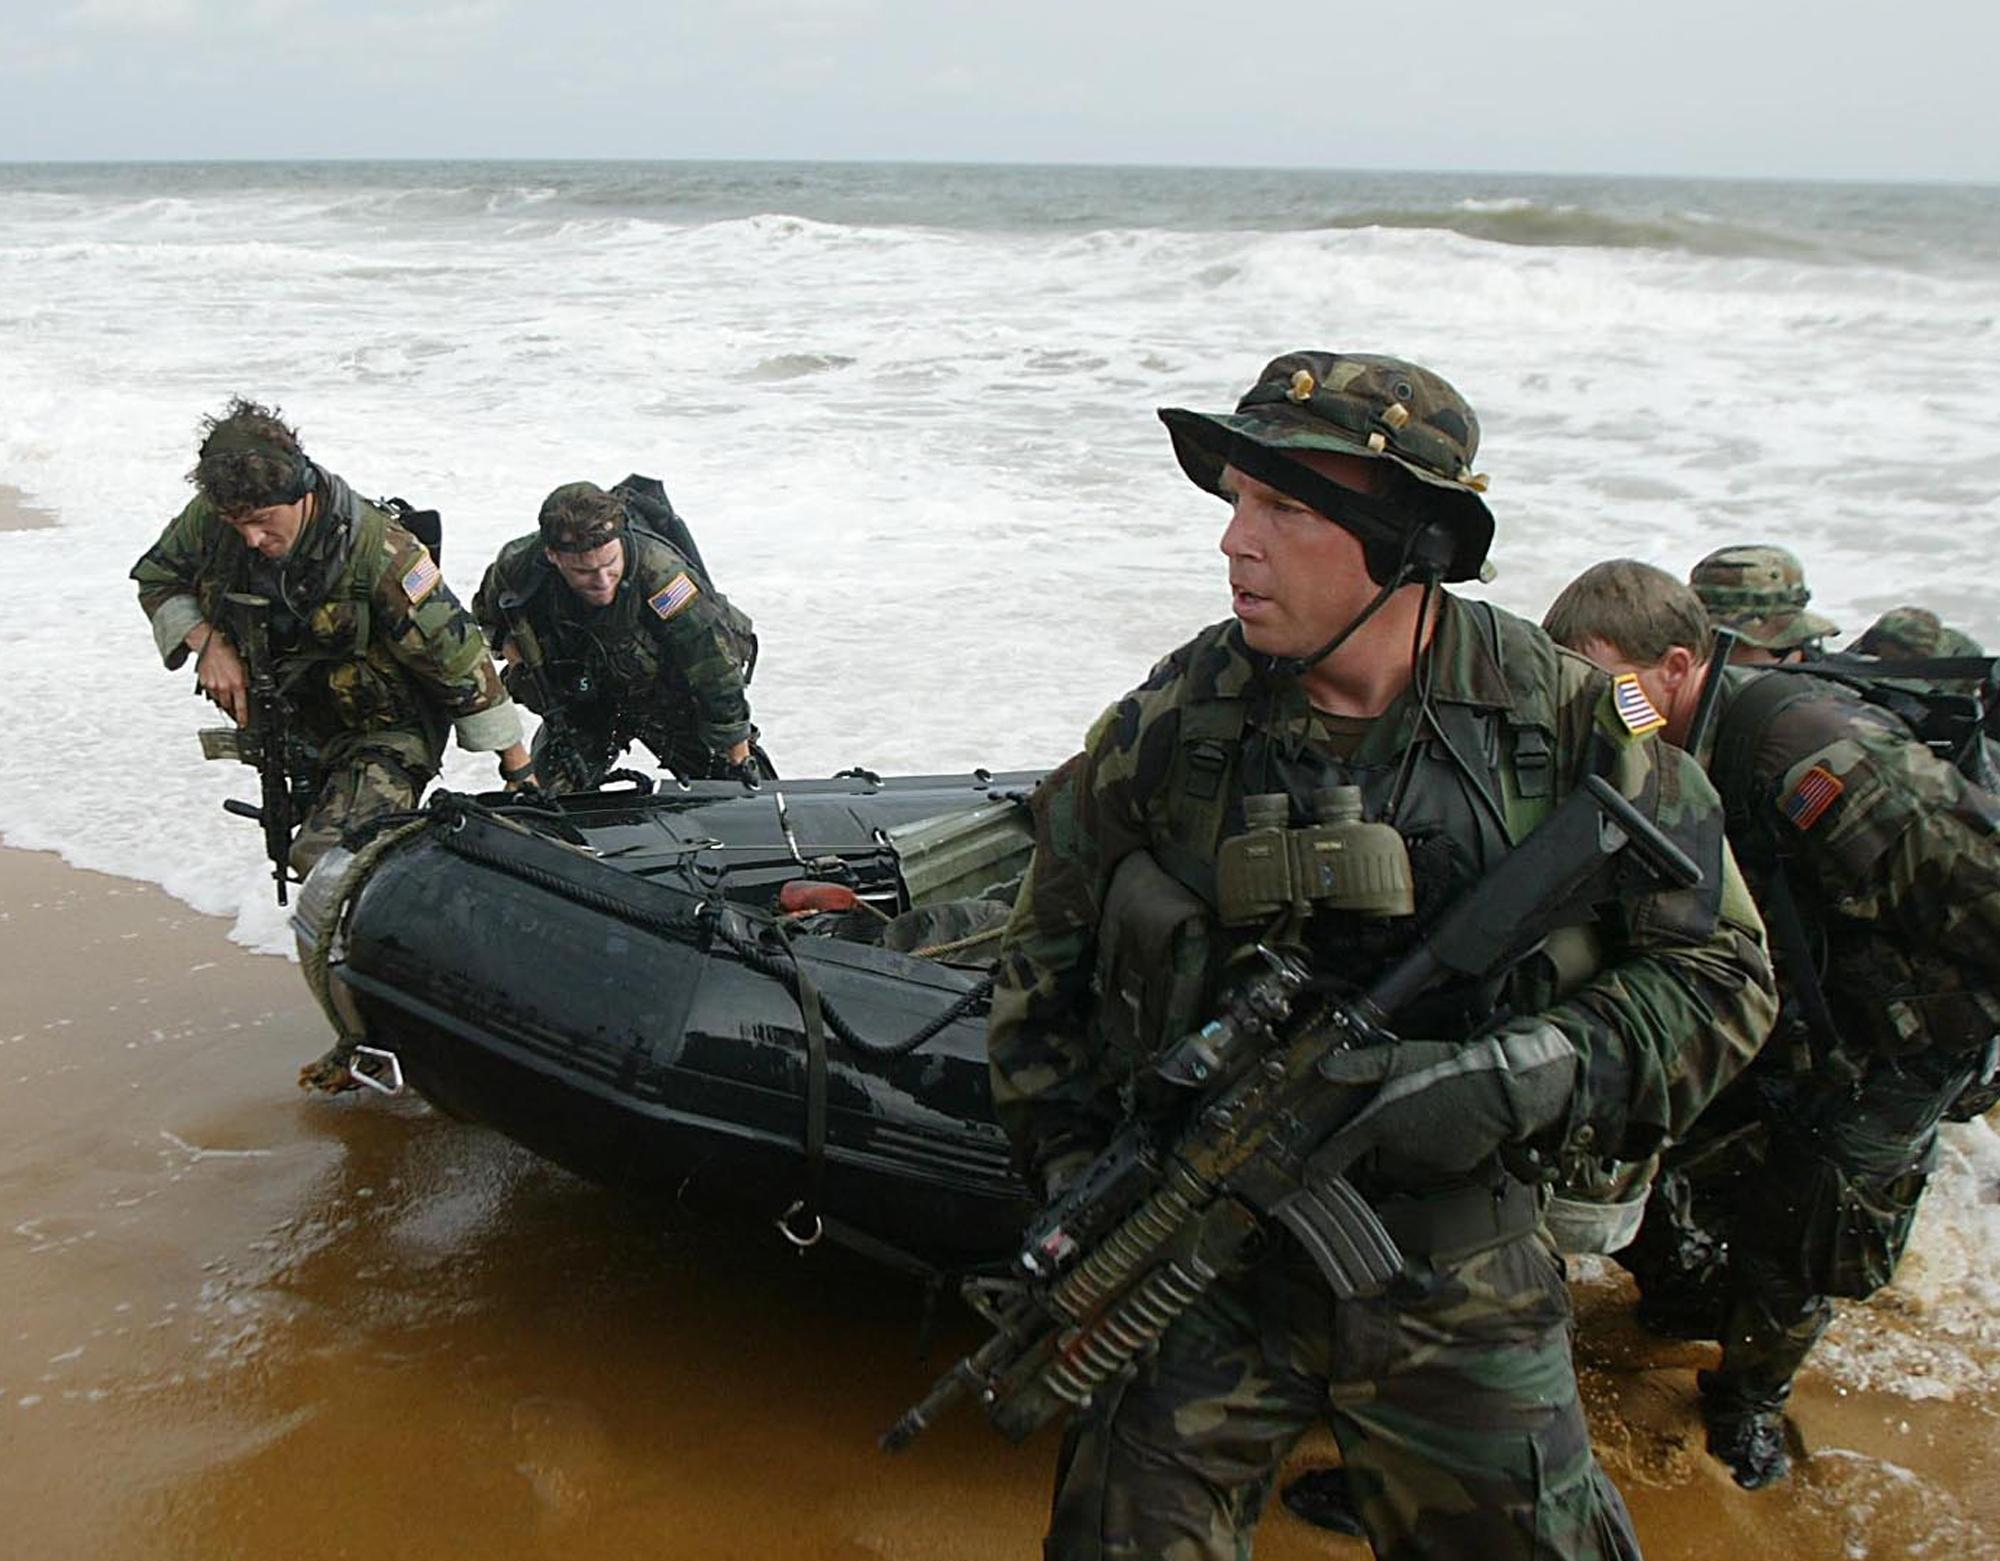 Navy proposing to expand SEAL training in Washington state | The